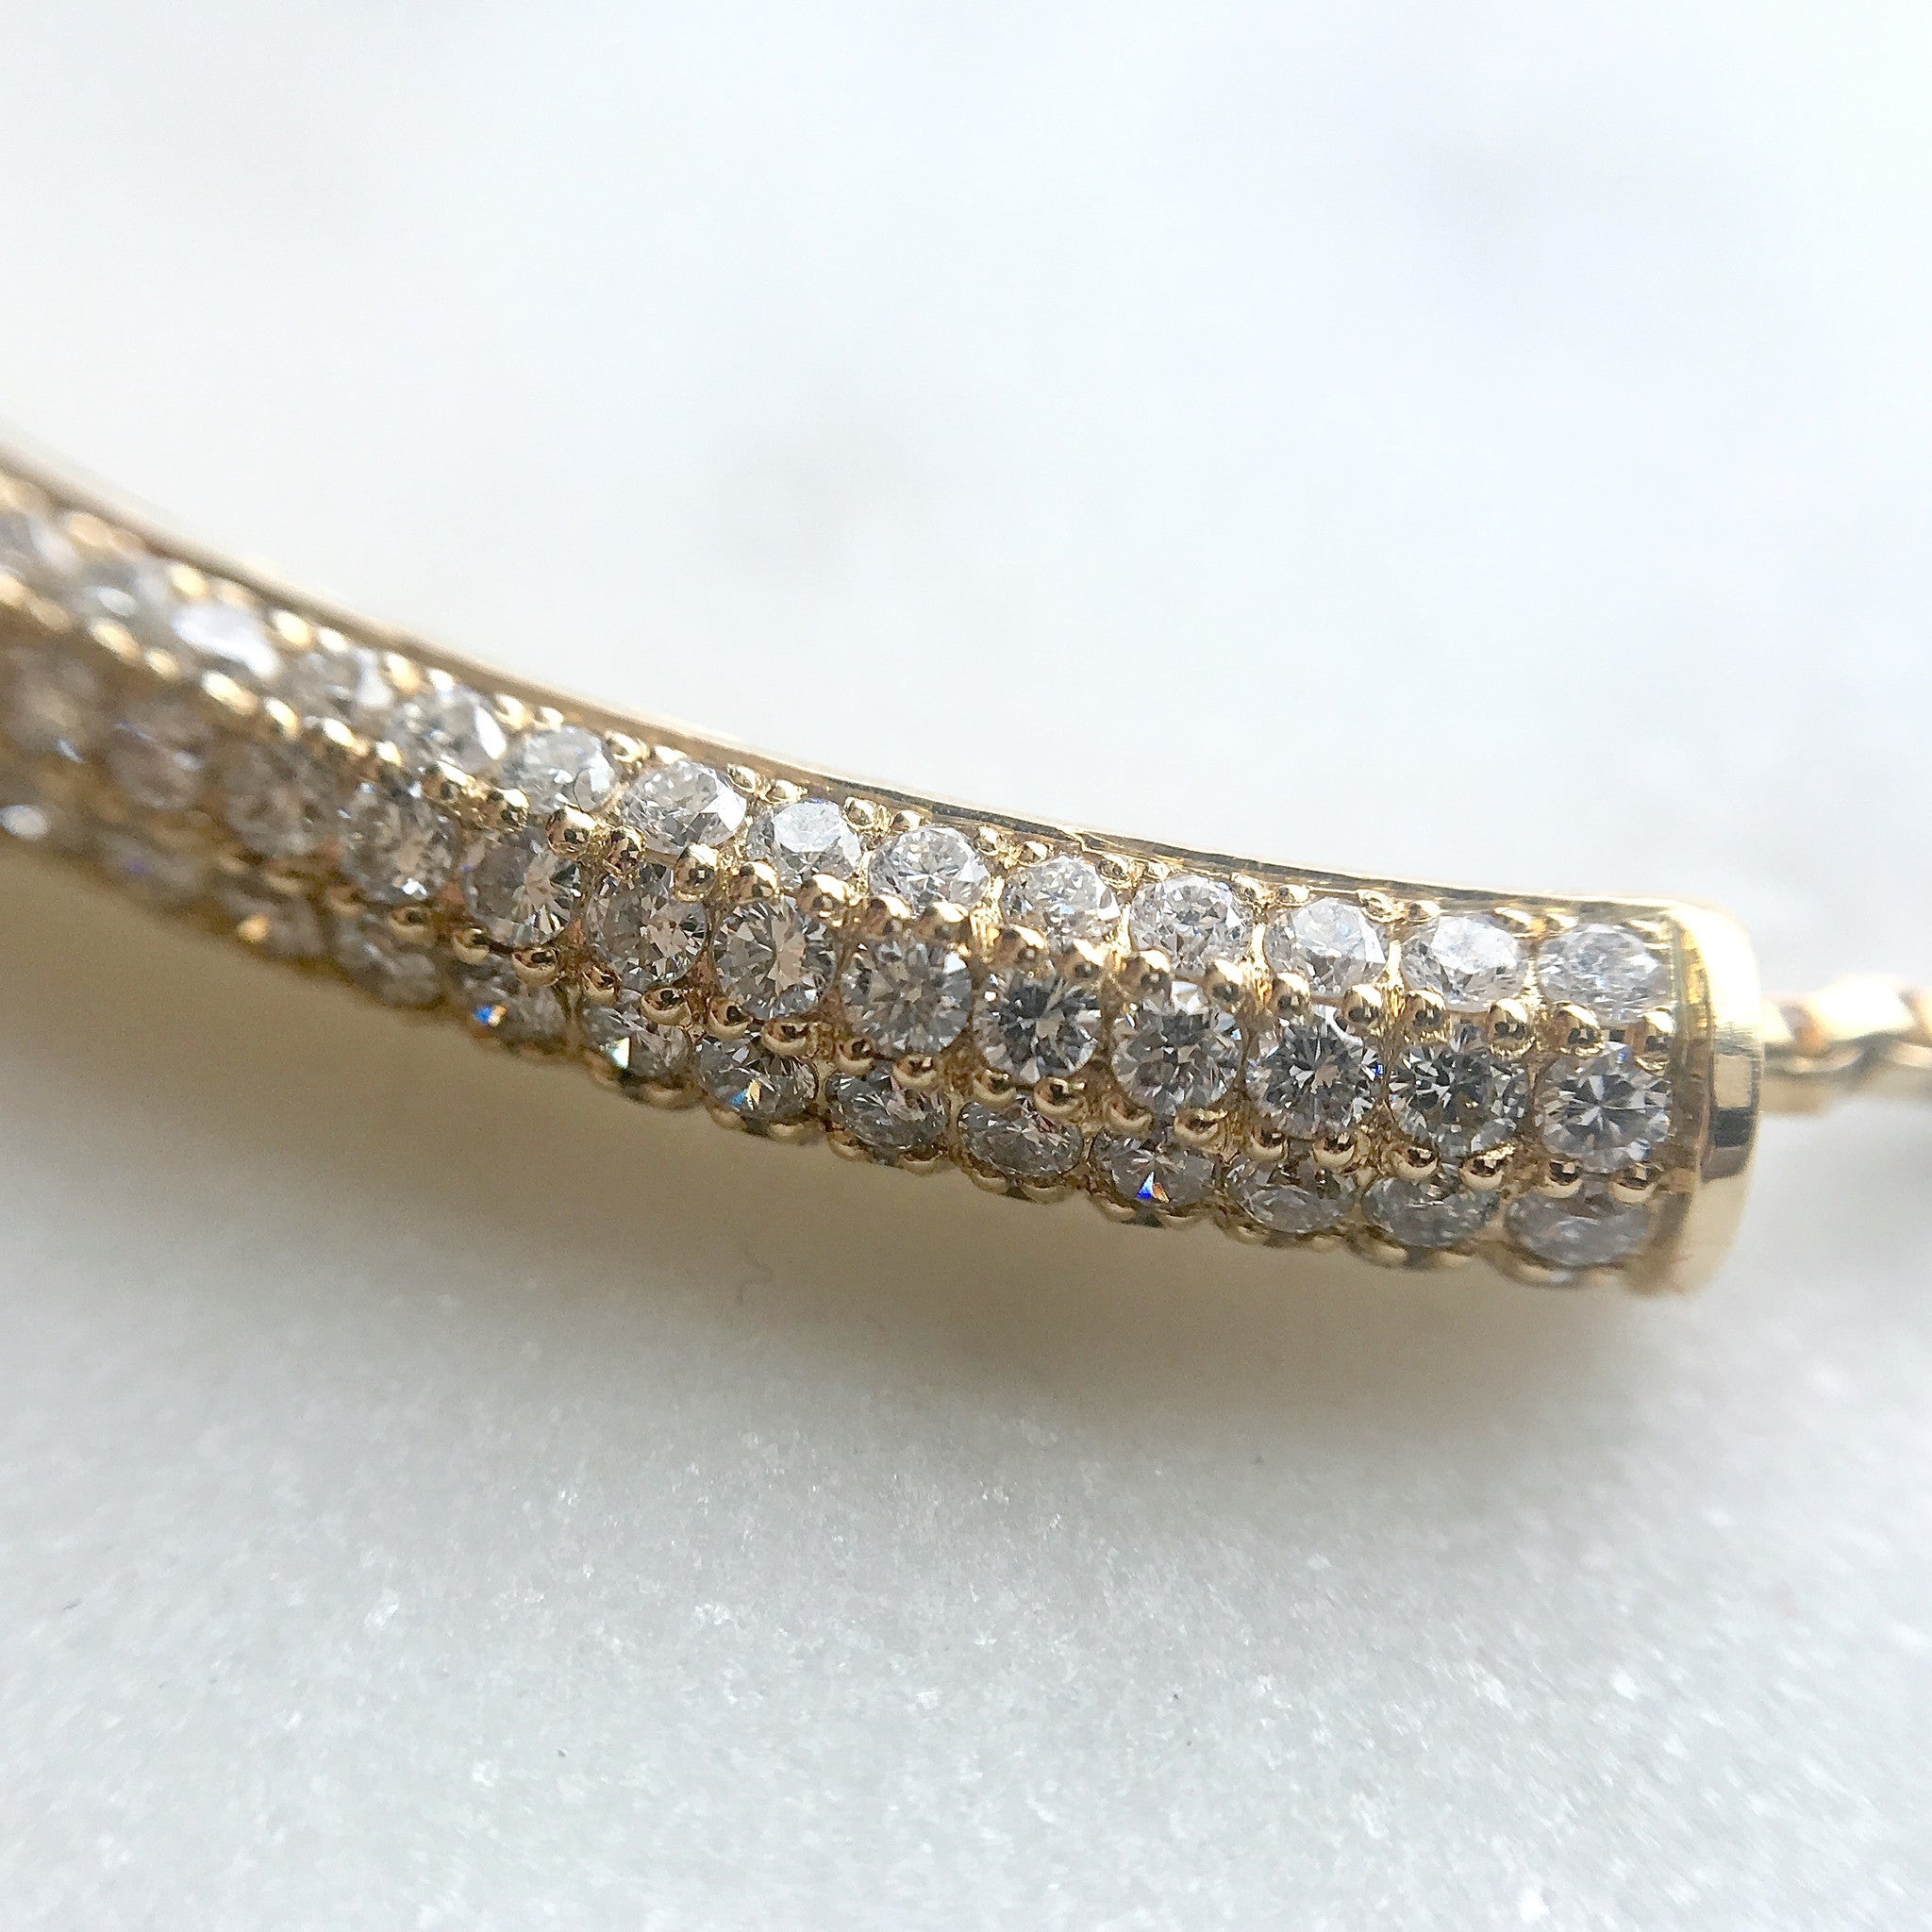 Diamond pavé bracelet